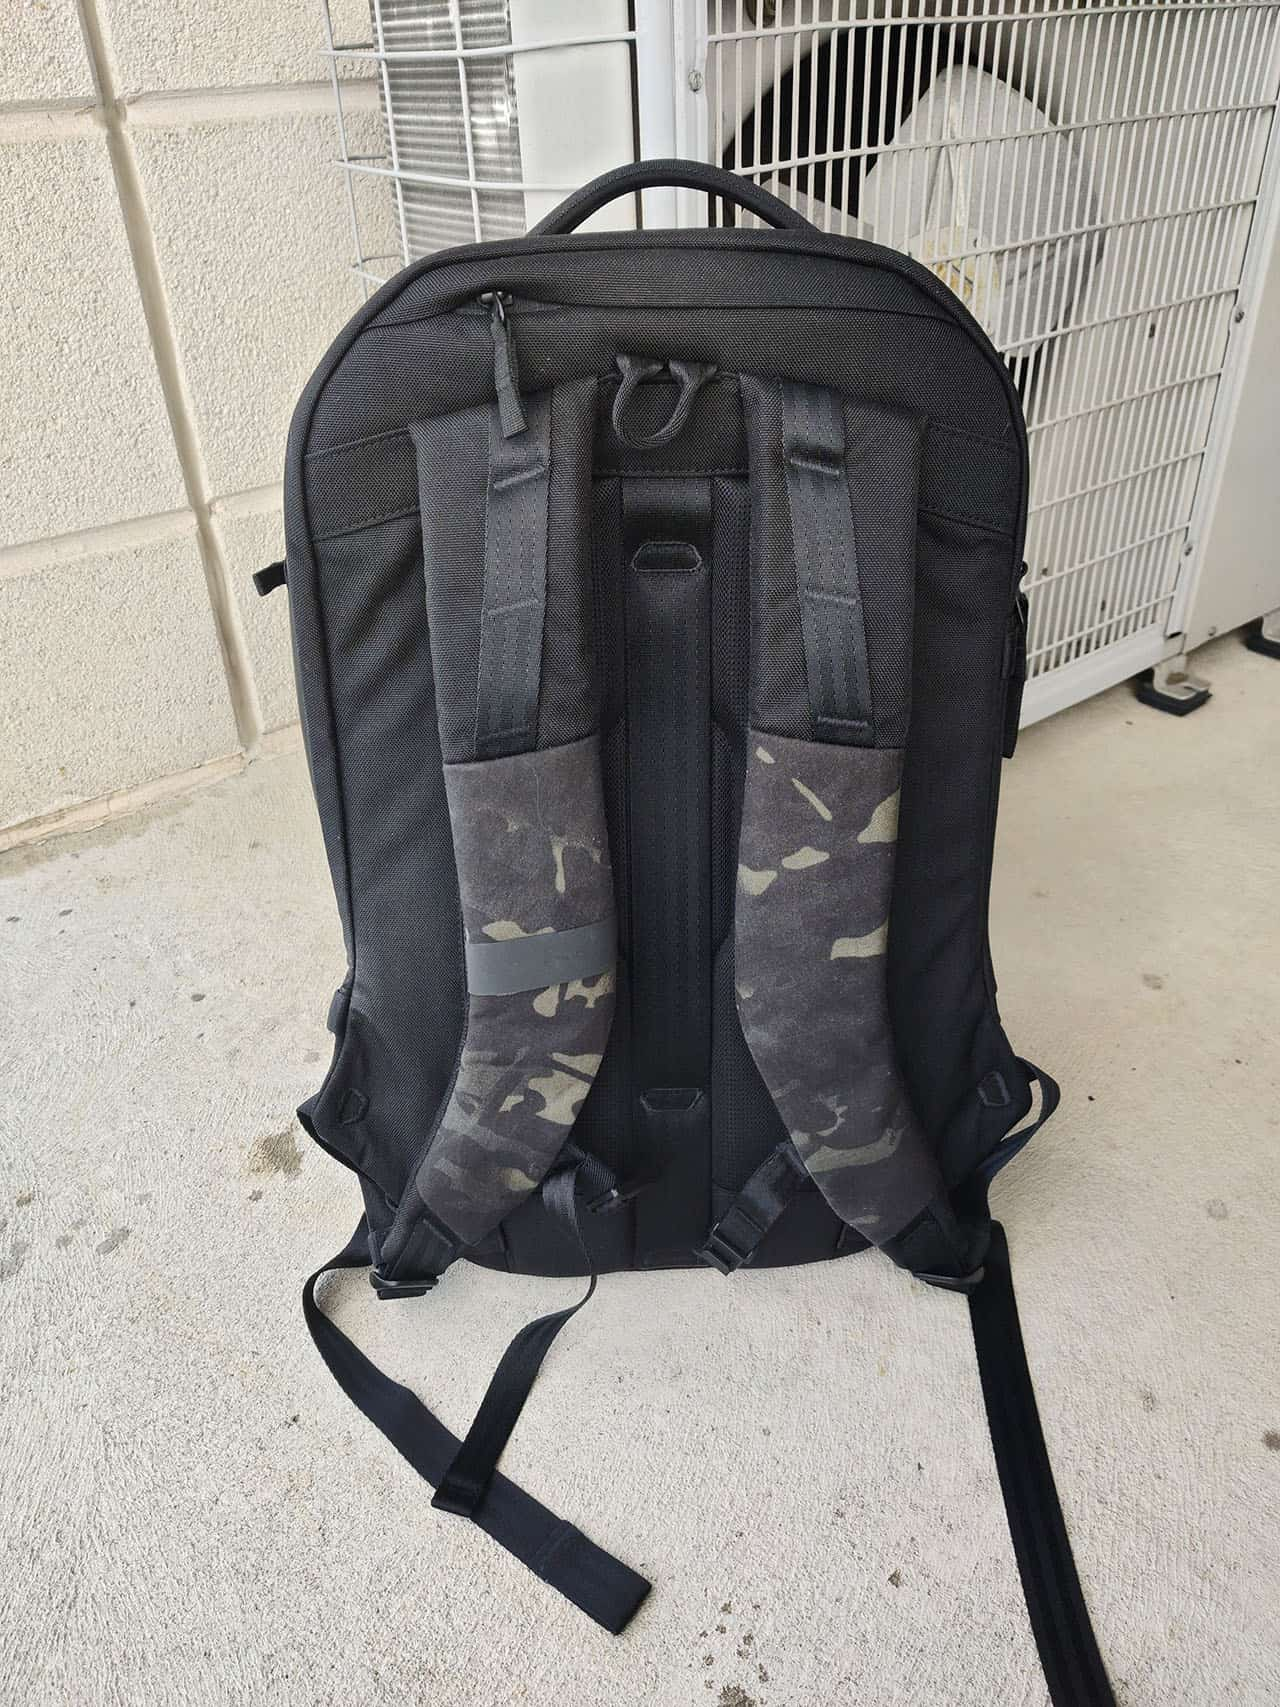 Able Carry Max Backpack straps